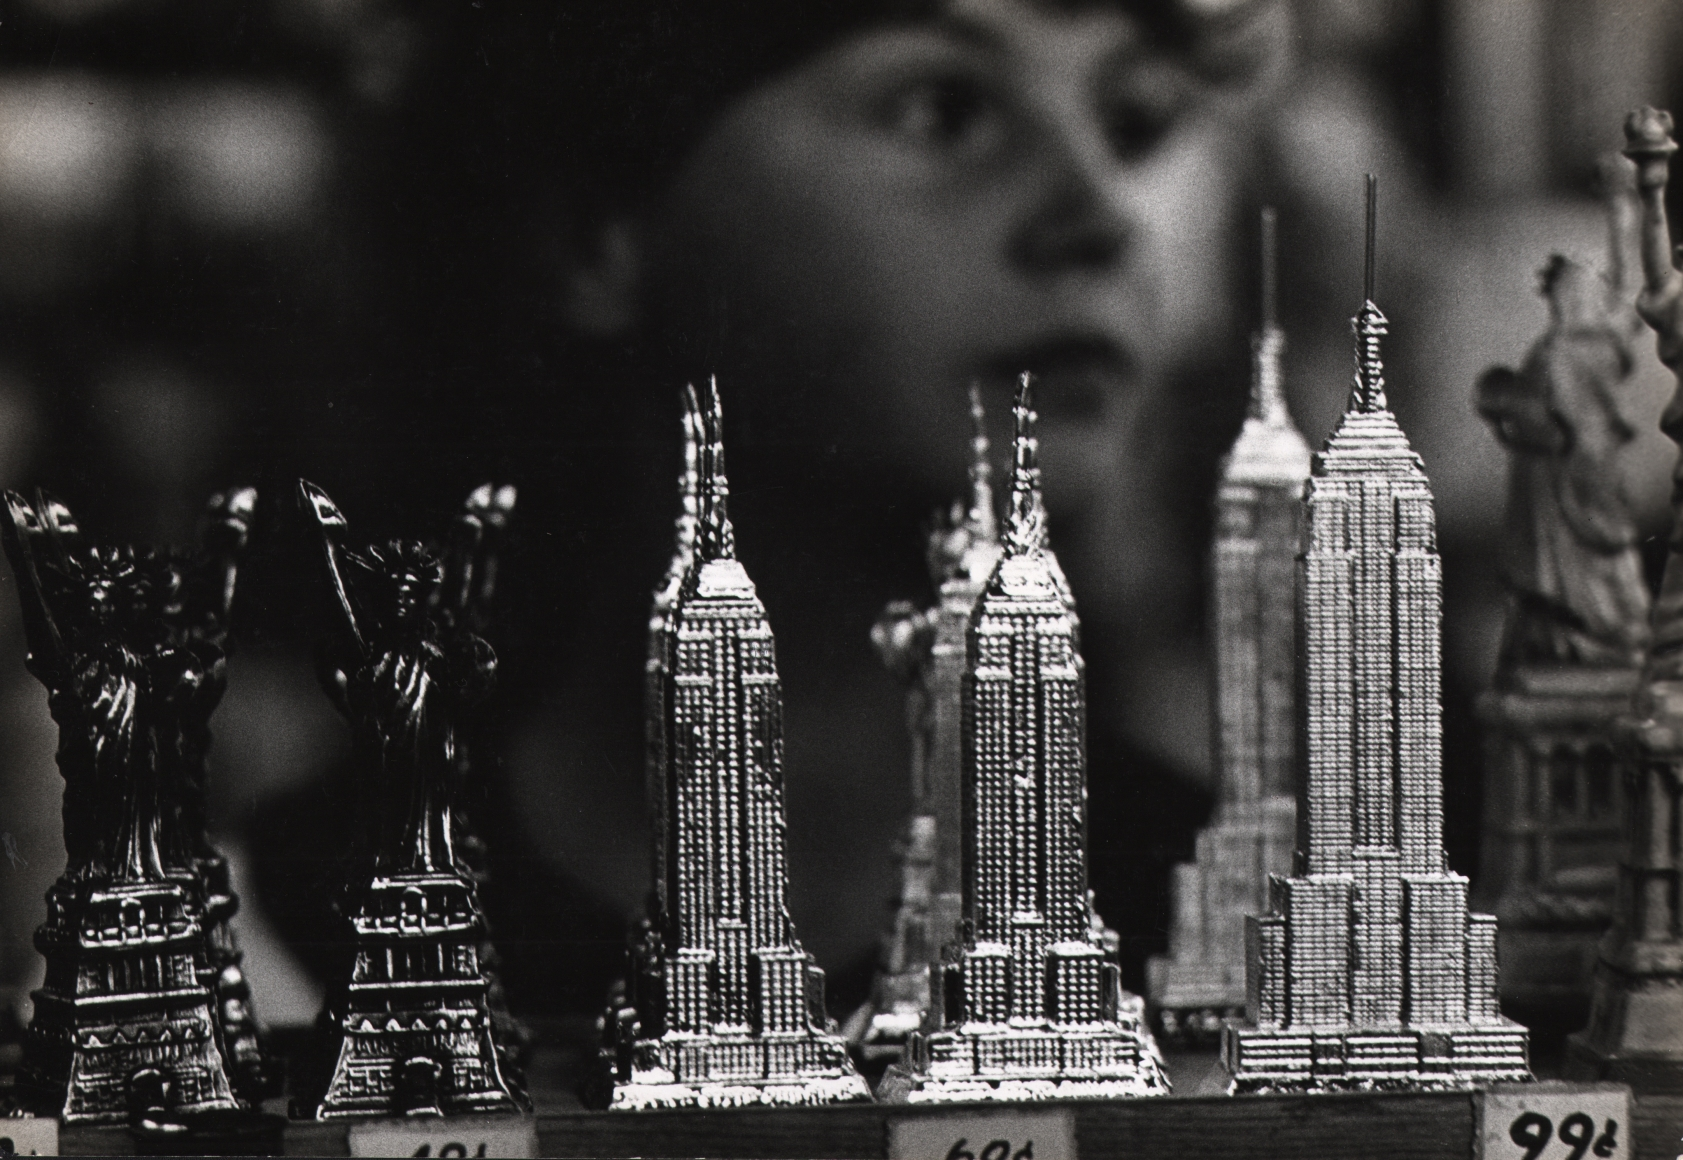 09. Jan Lukas, Souvenirs of New York, 1964. Miniatures of the Statue of Liberty, Chrysler Building, and Empire State Building for sale on a shelf. A child's face is out of focus behind them.